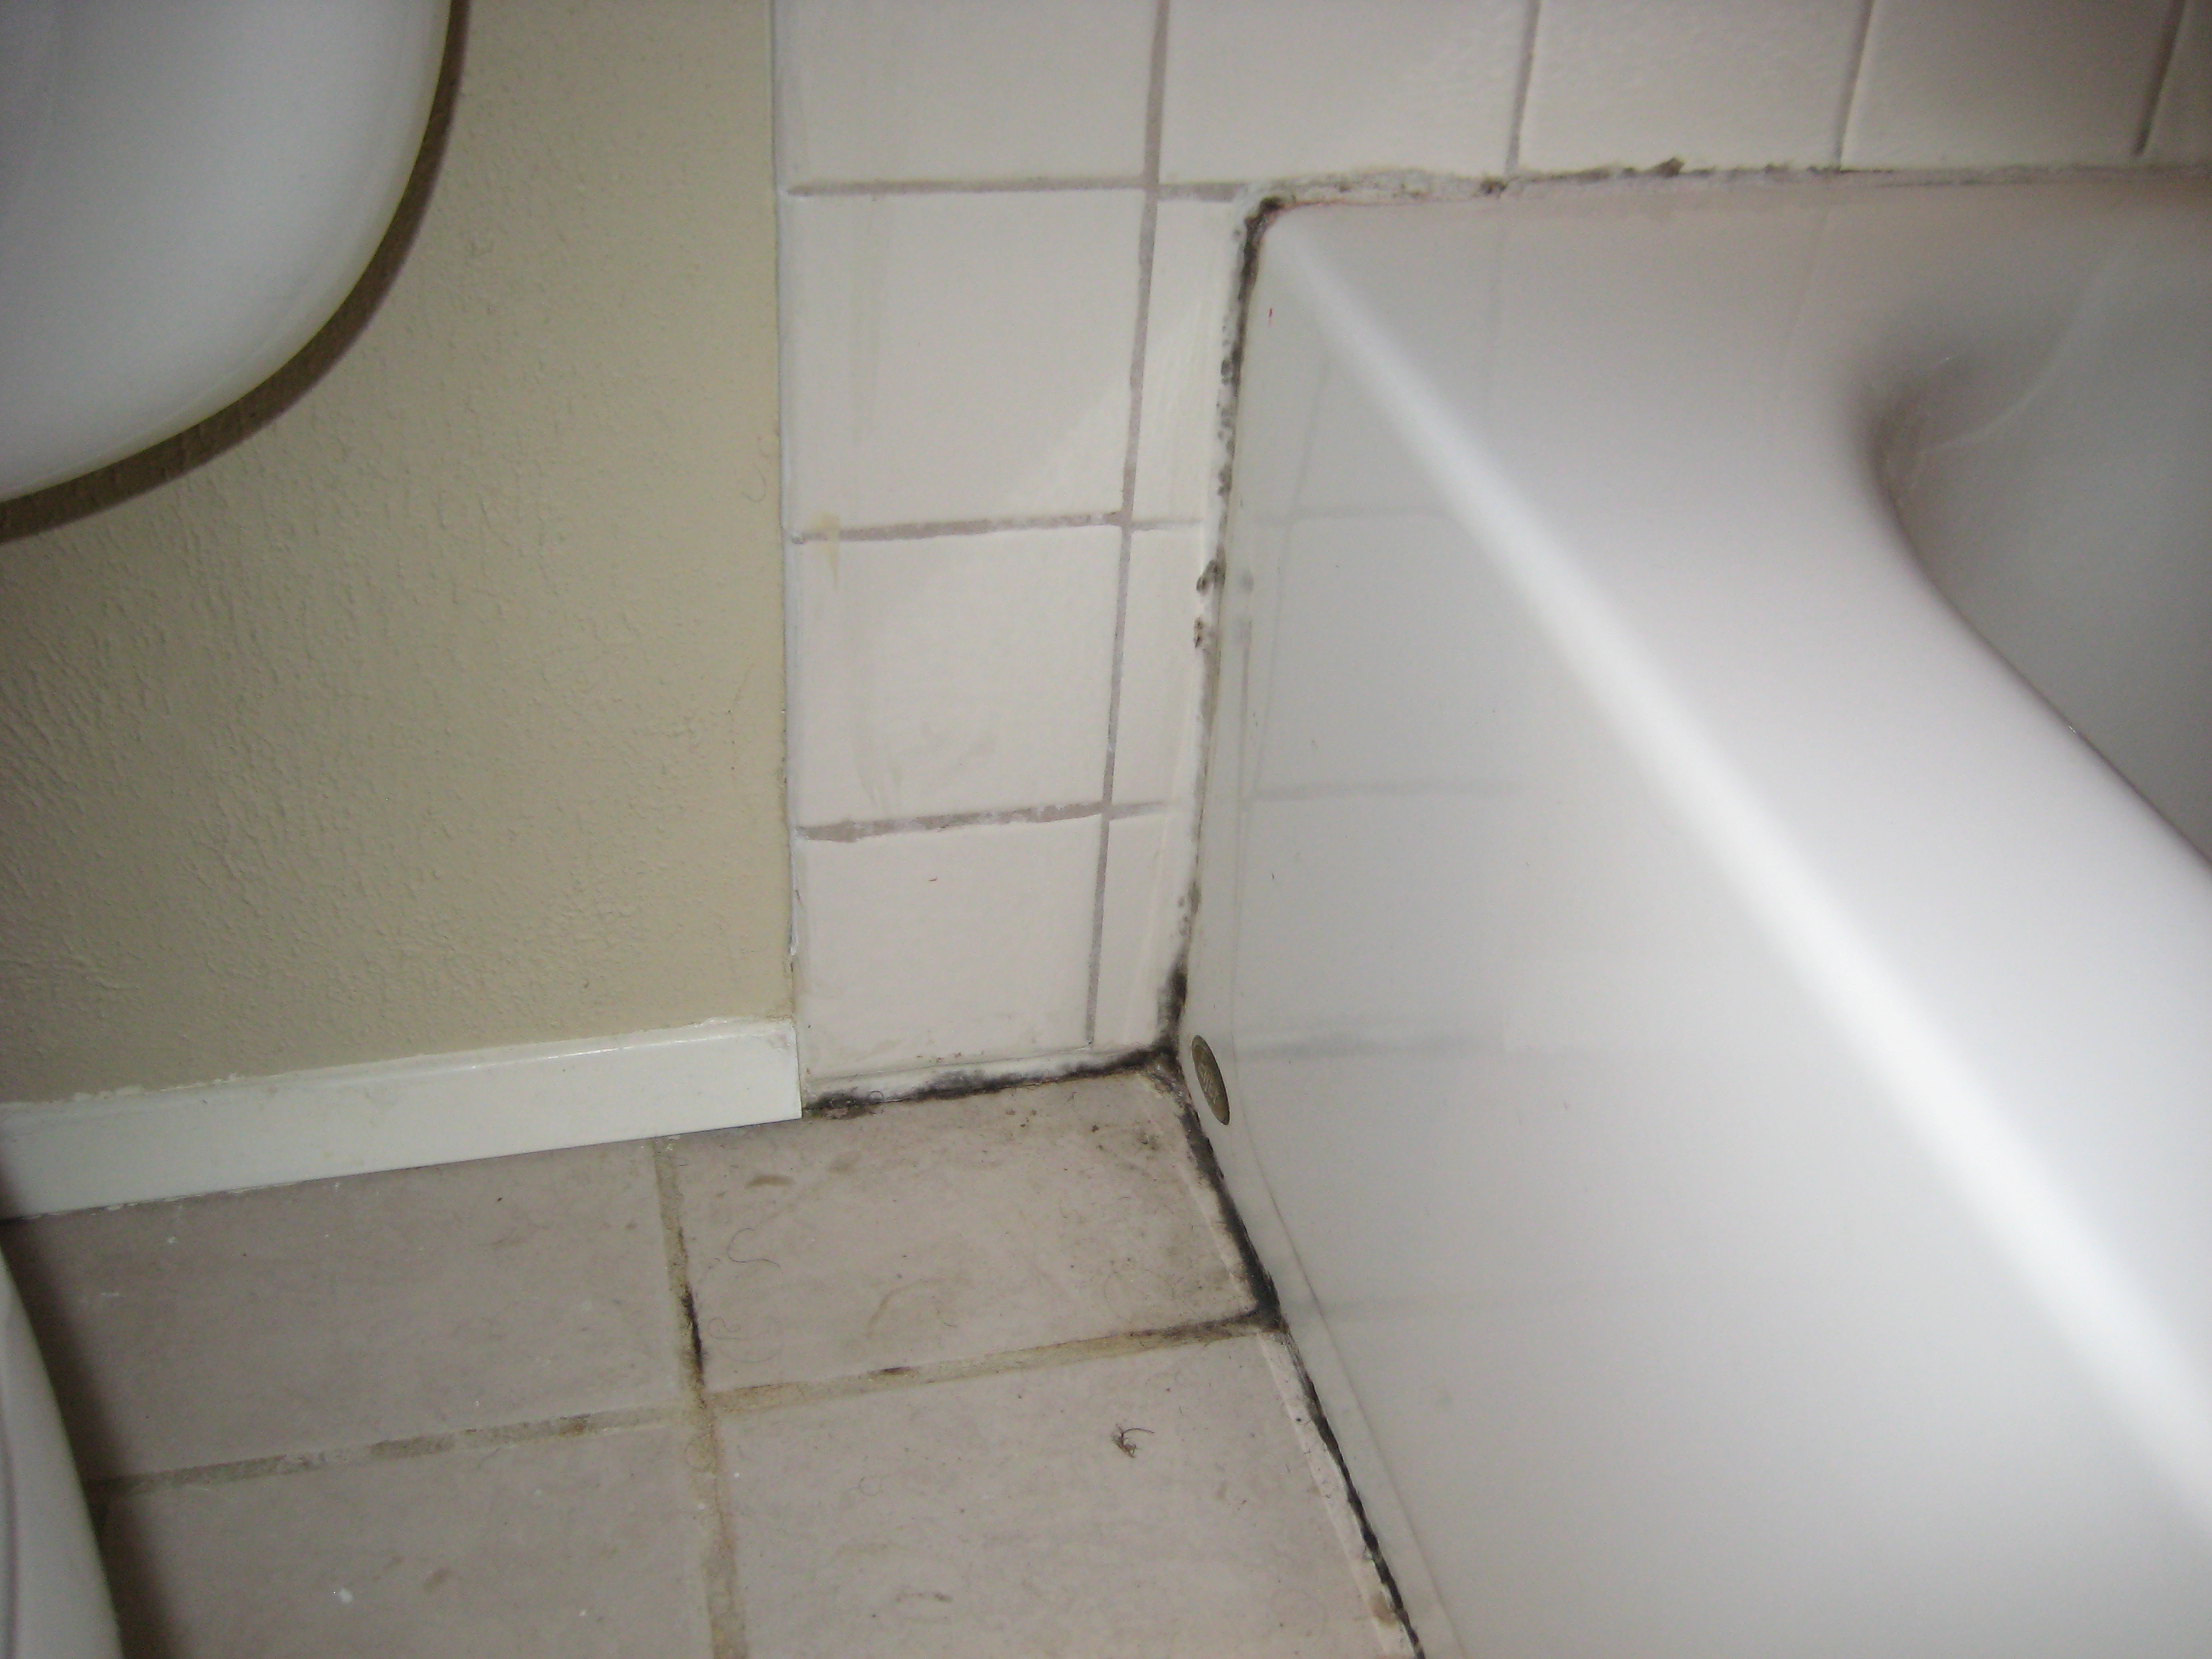 check out the bath and tub grout